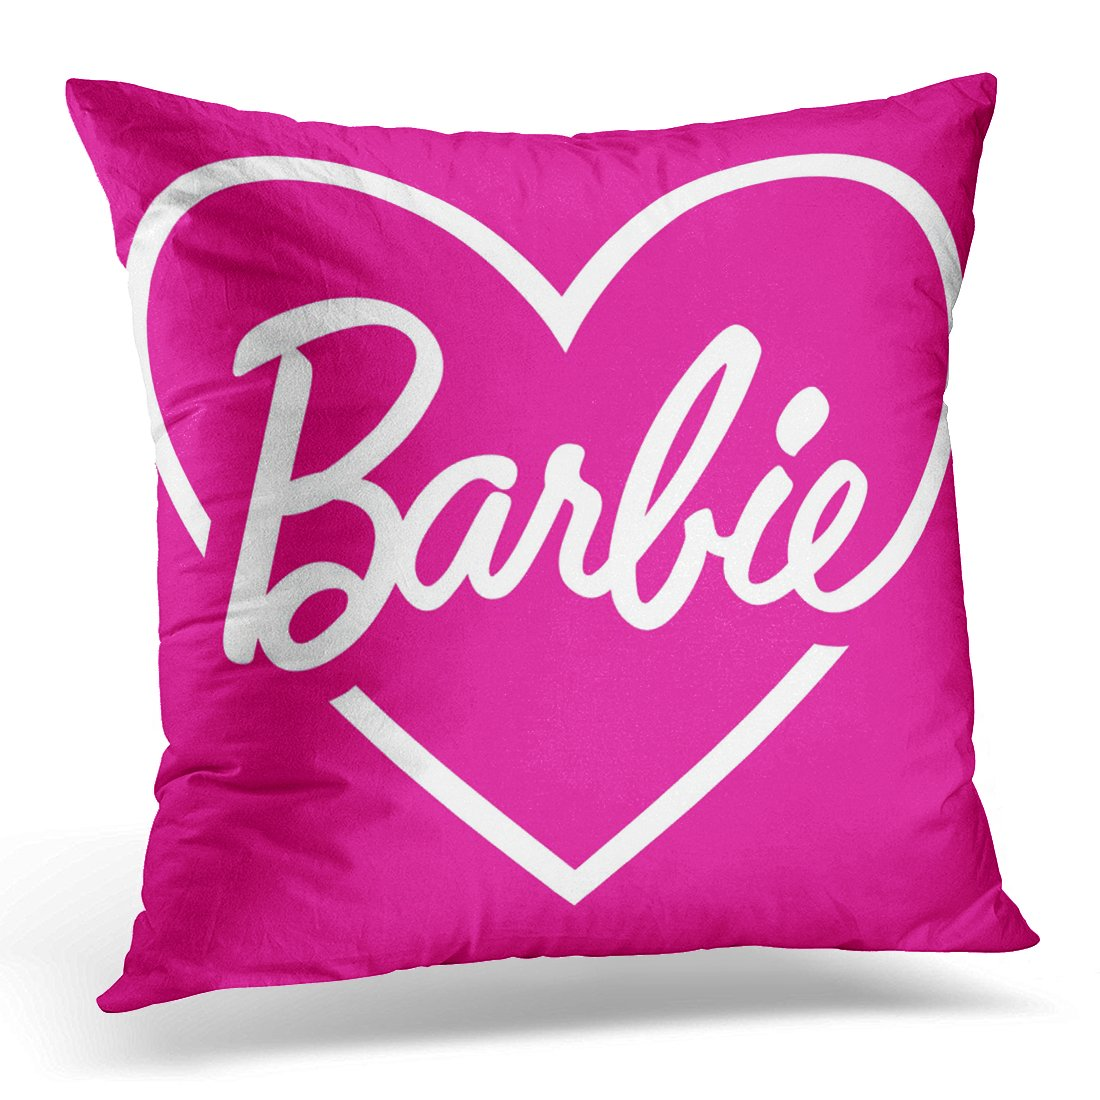 VANMI Throw Pillow Cover Love Barbie Pink Heart Vintage Decorative Pillow Case Home Decor Square 16x16 Inches Pillowcase